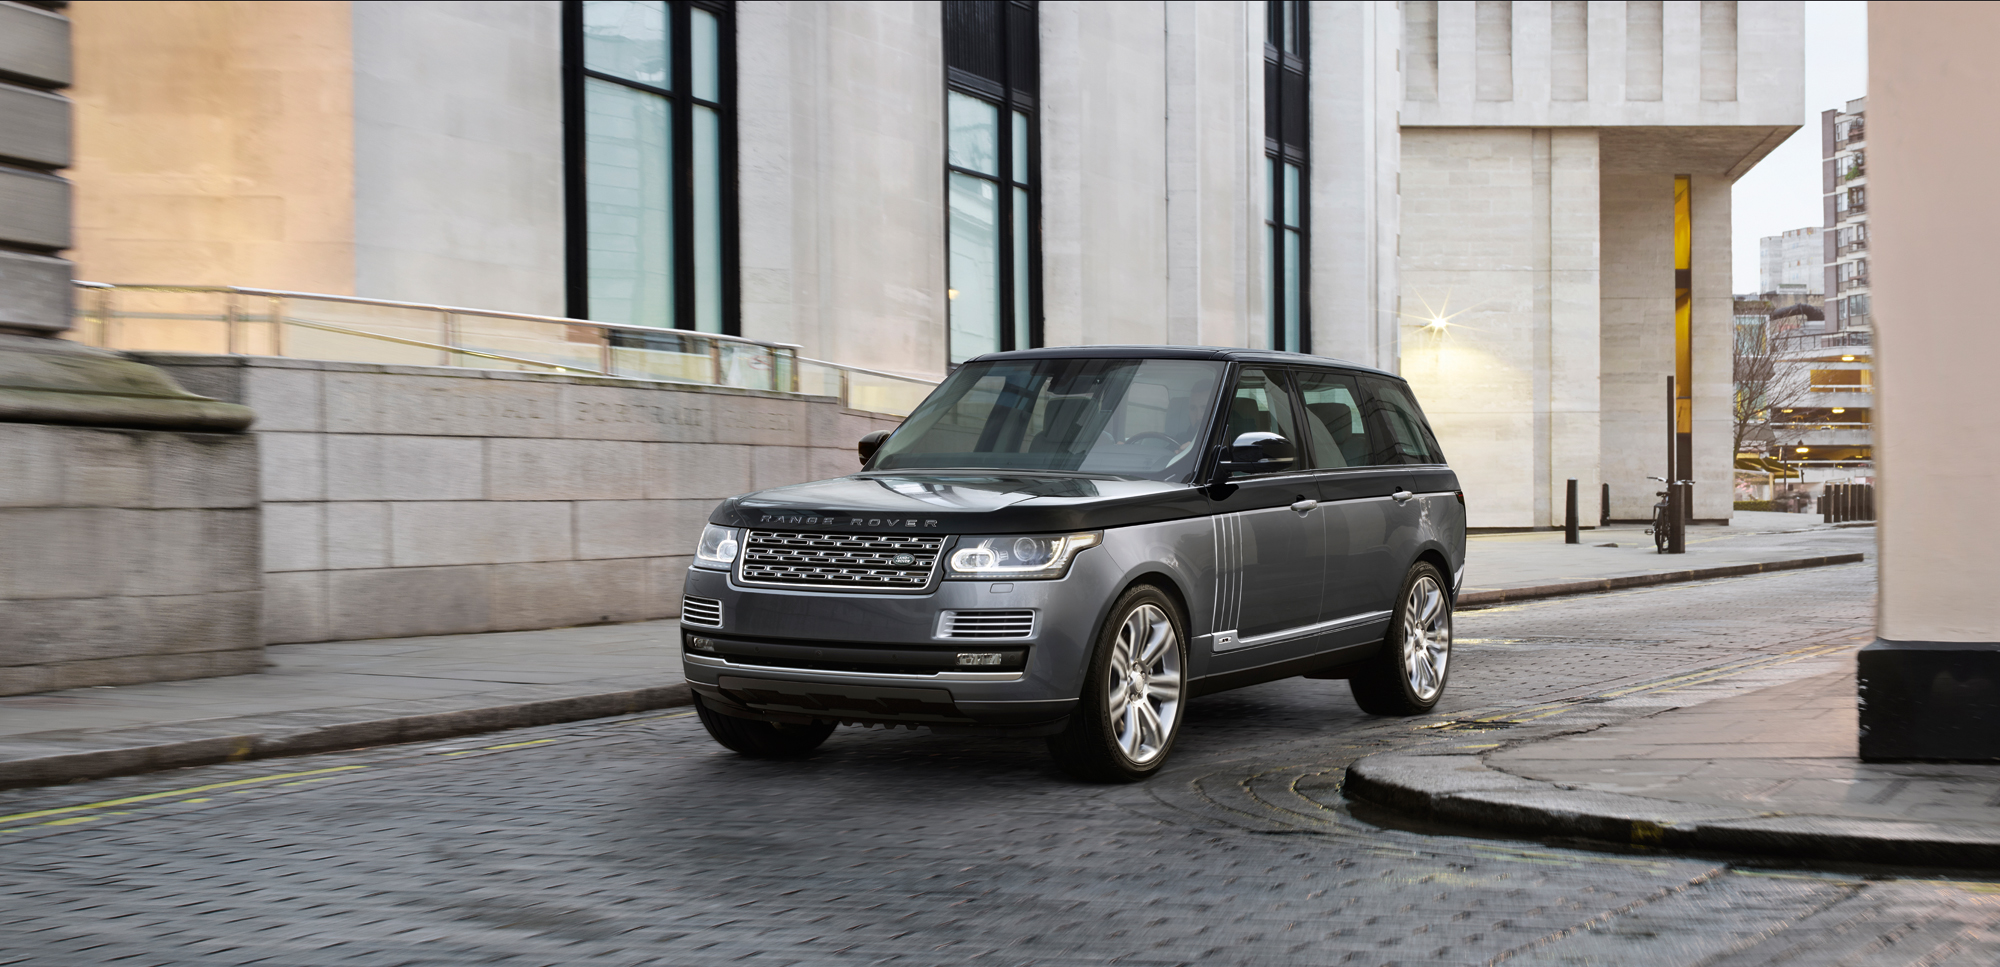 Land Rover Reveals The Most Expensive SUV You Can Buy AutoGuide - Range rover forum